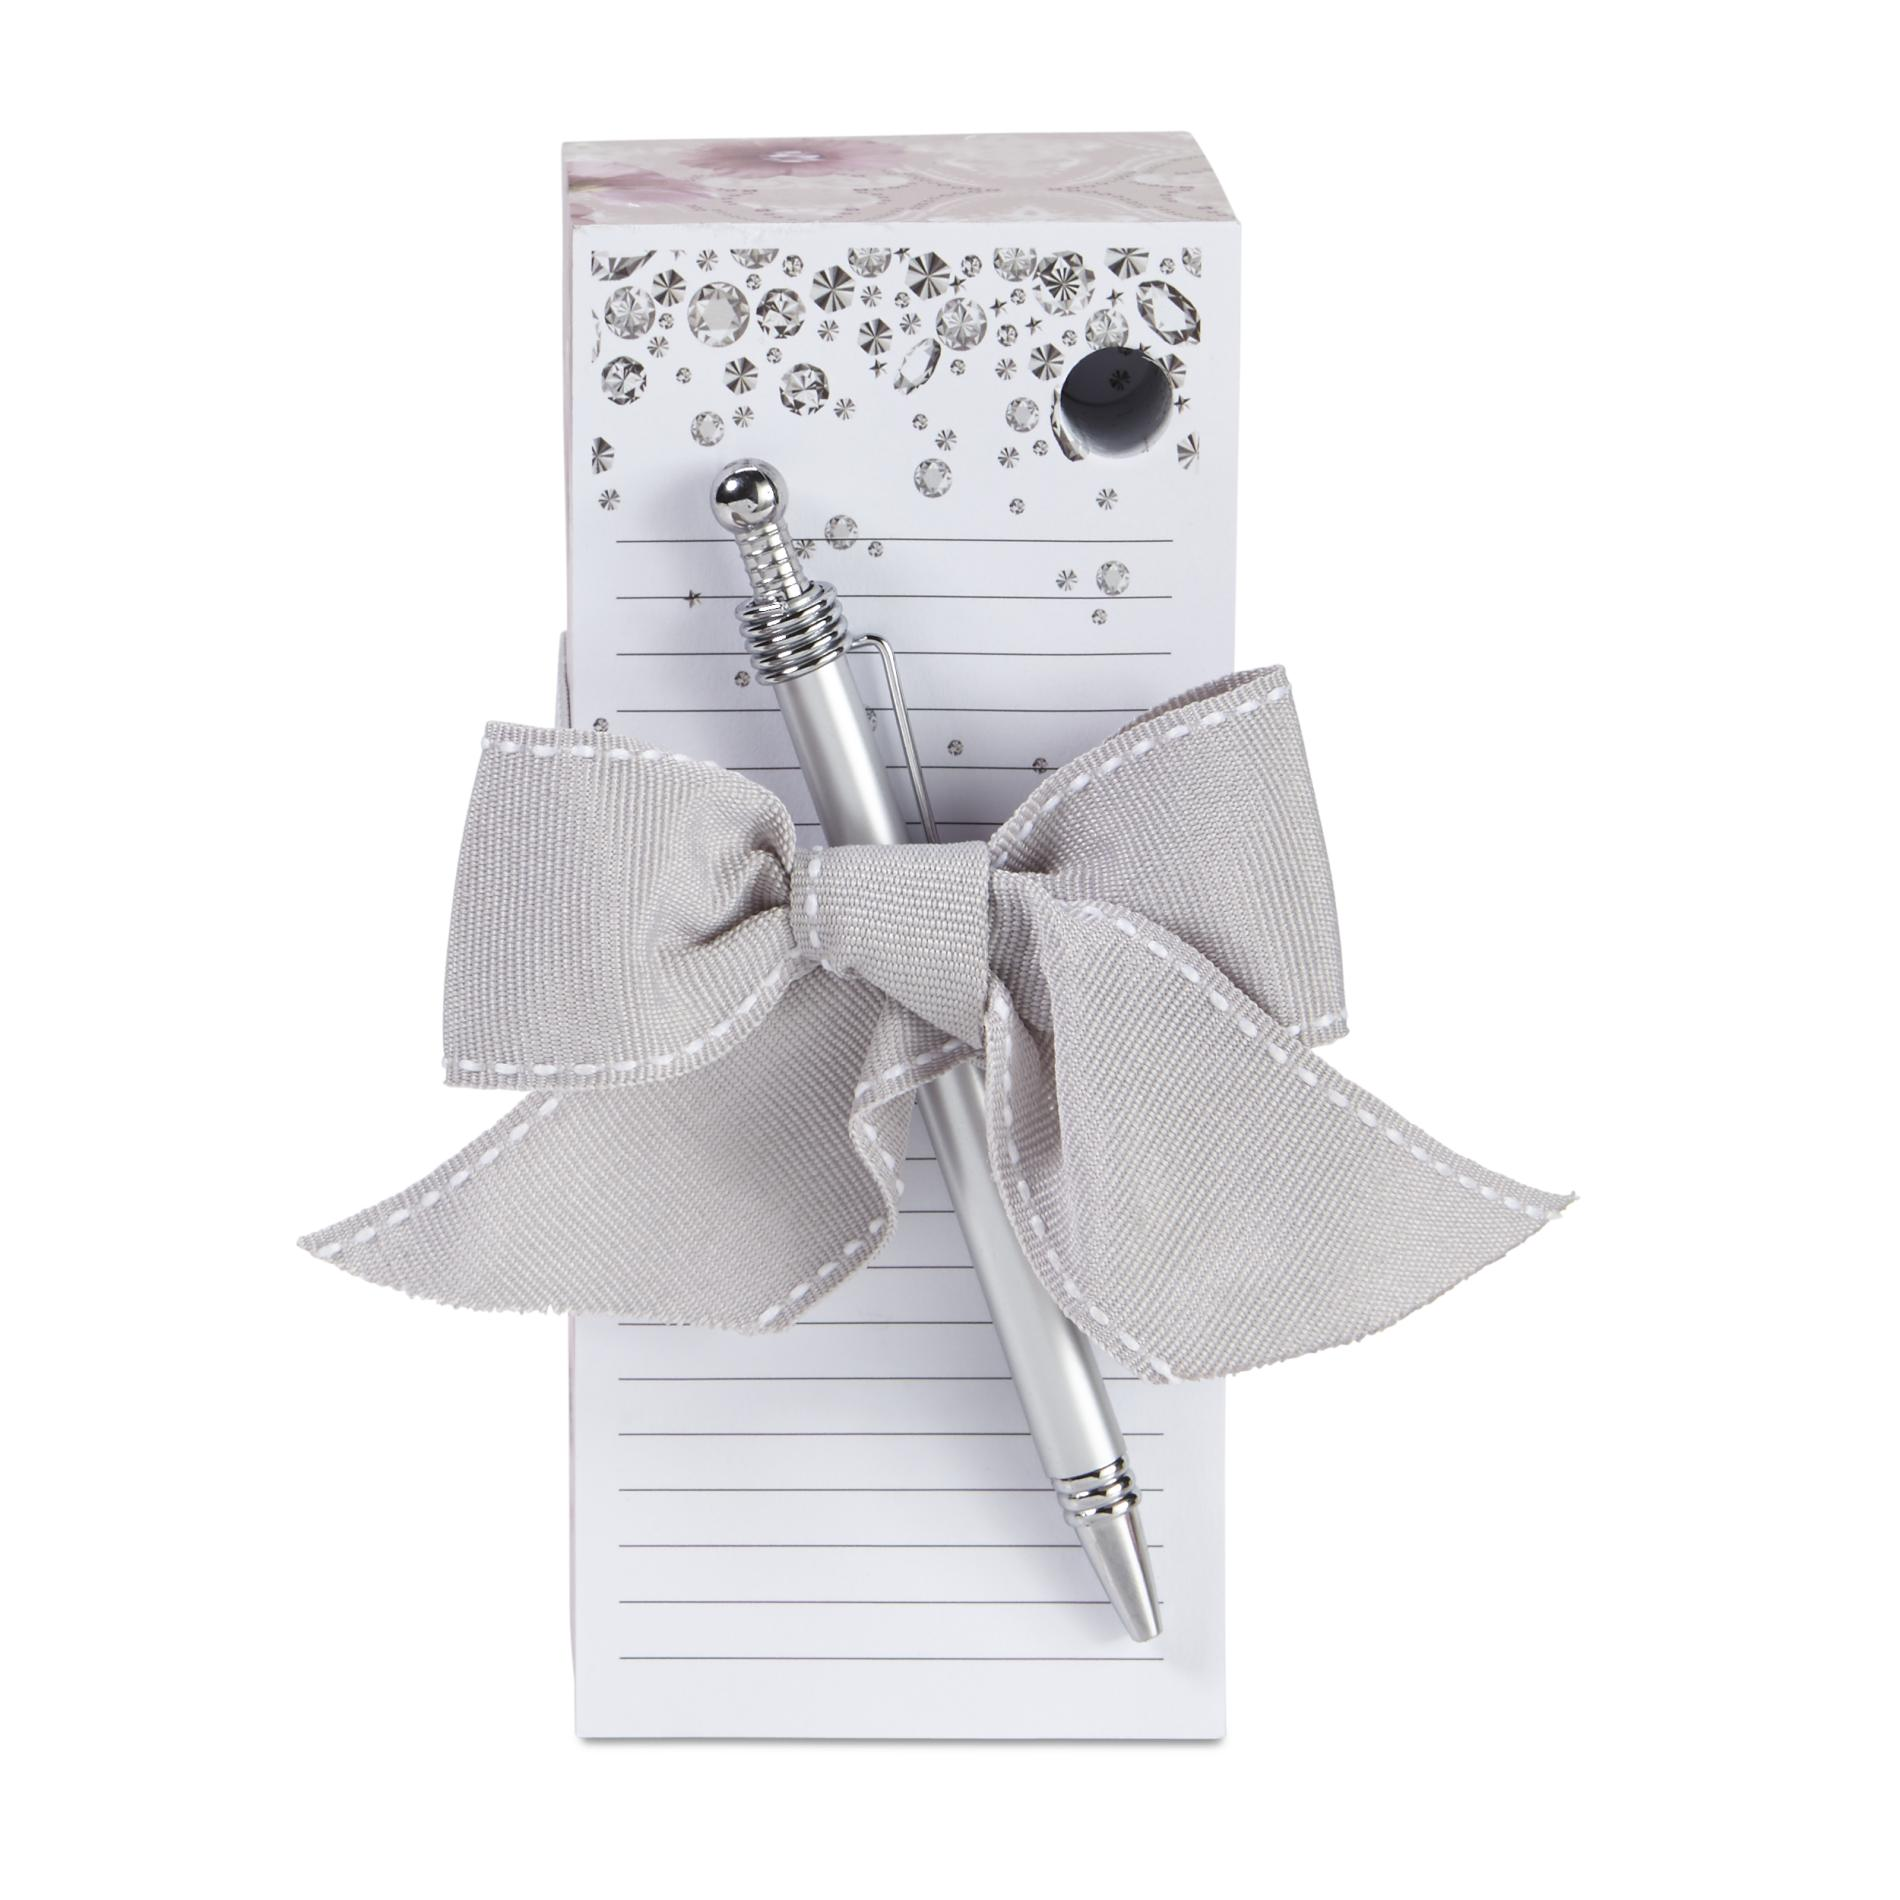 Image of 1136-20139 Notepad & Pen - Jewels & Flowers, Multi Color